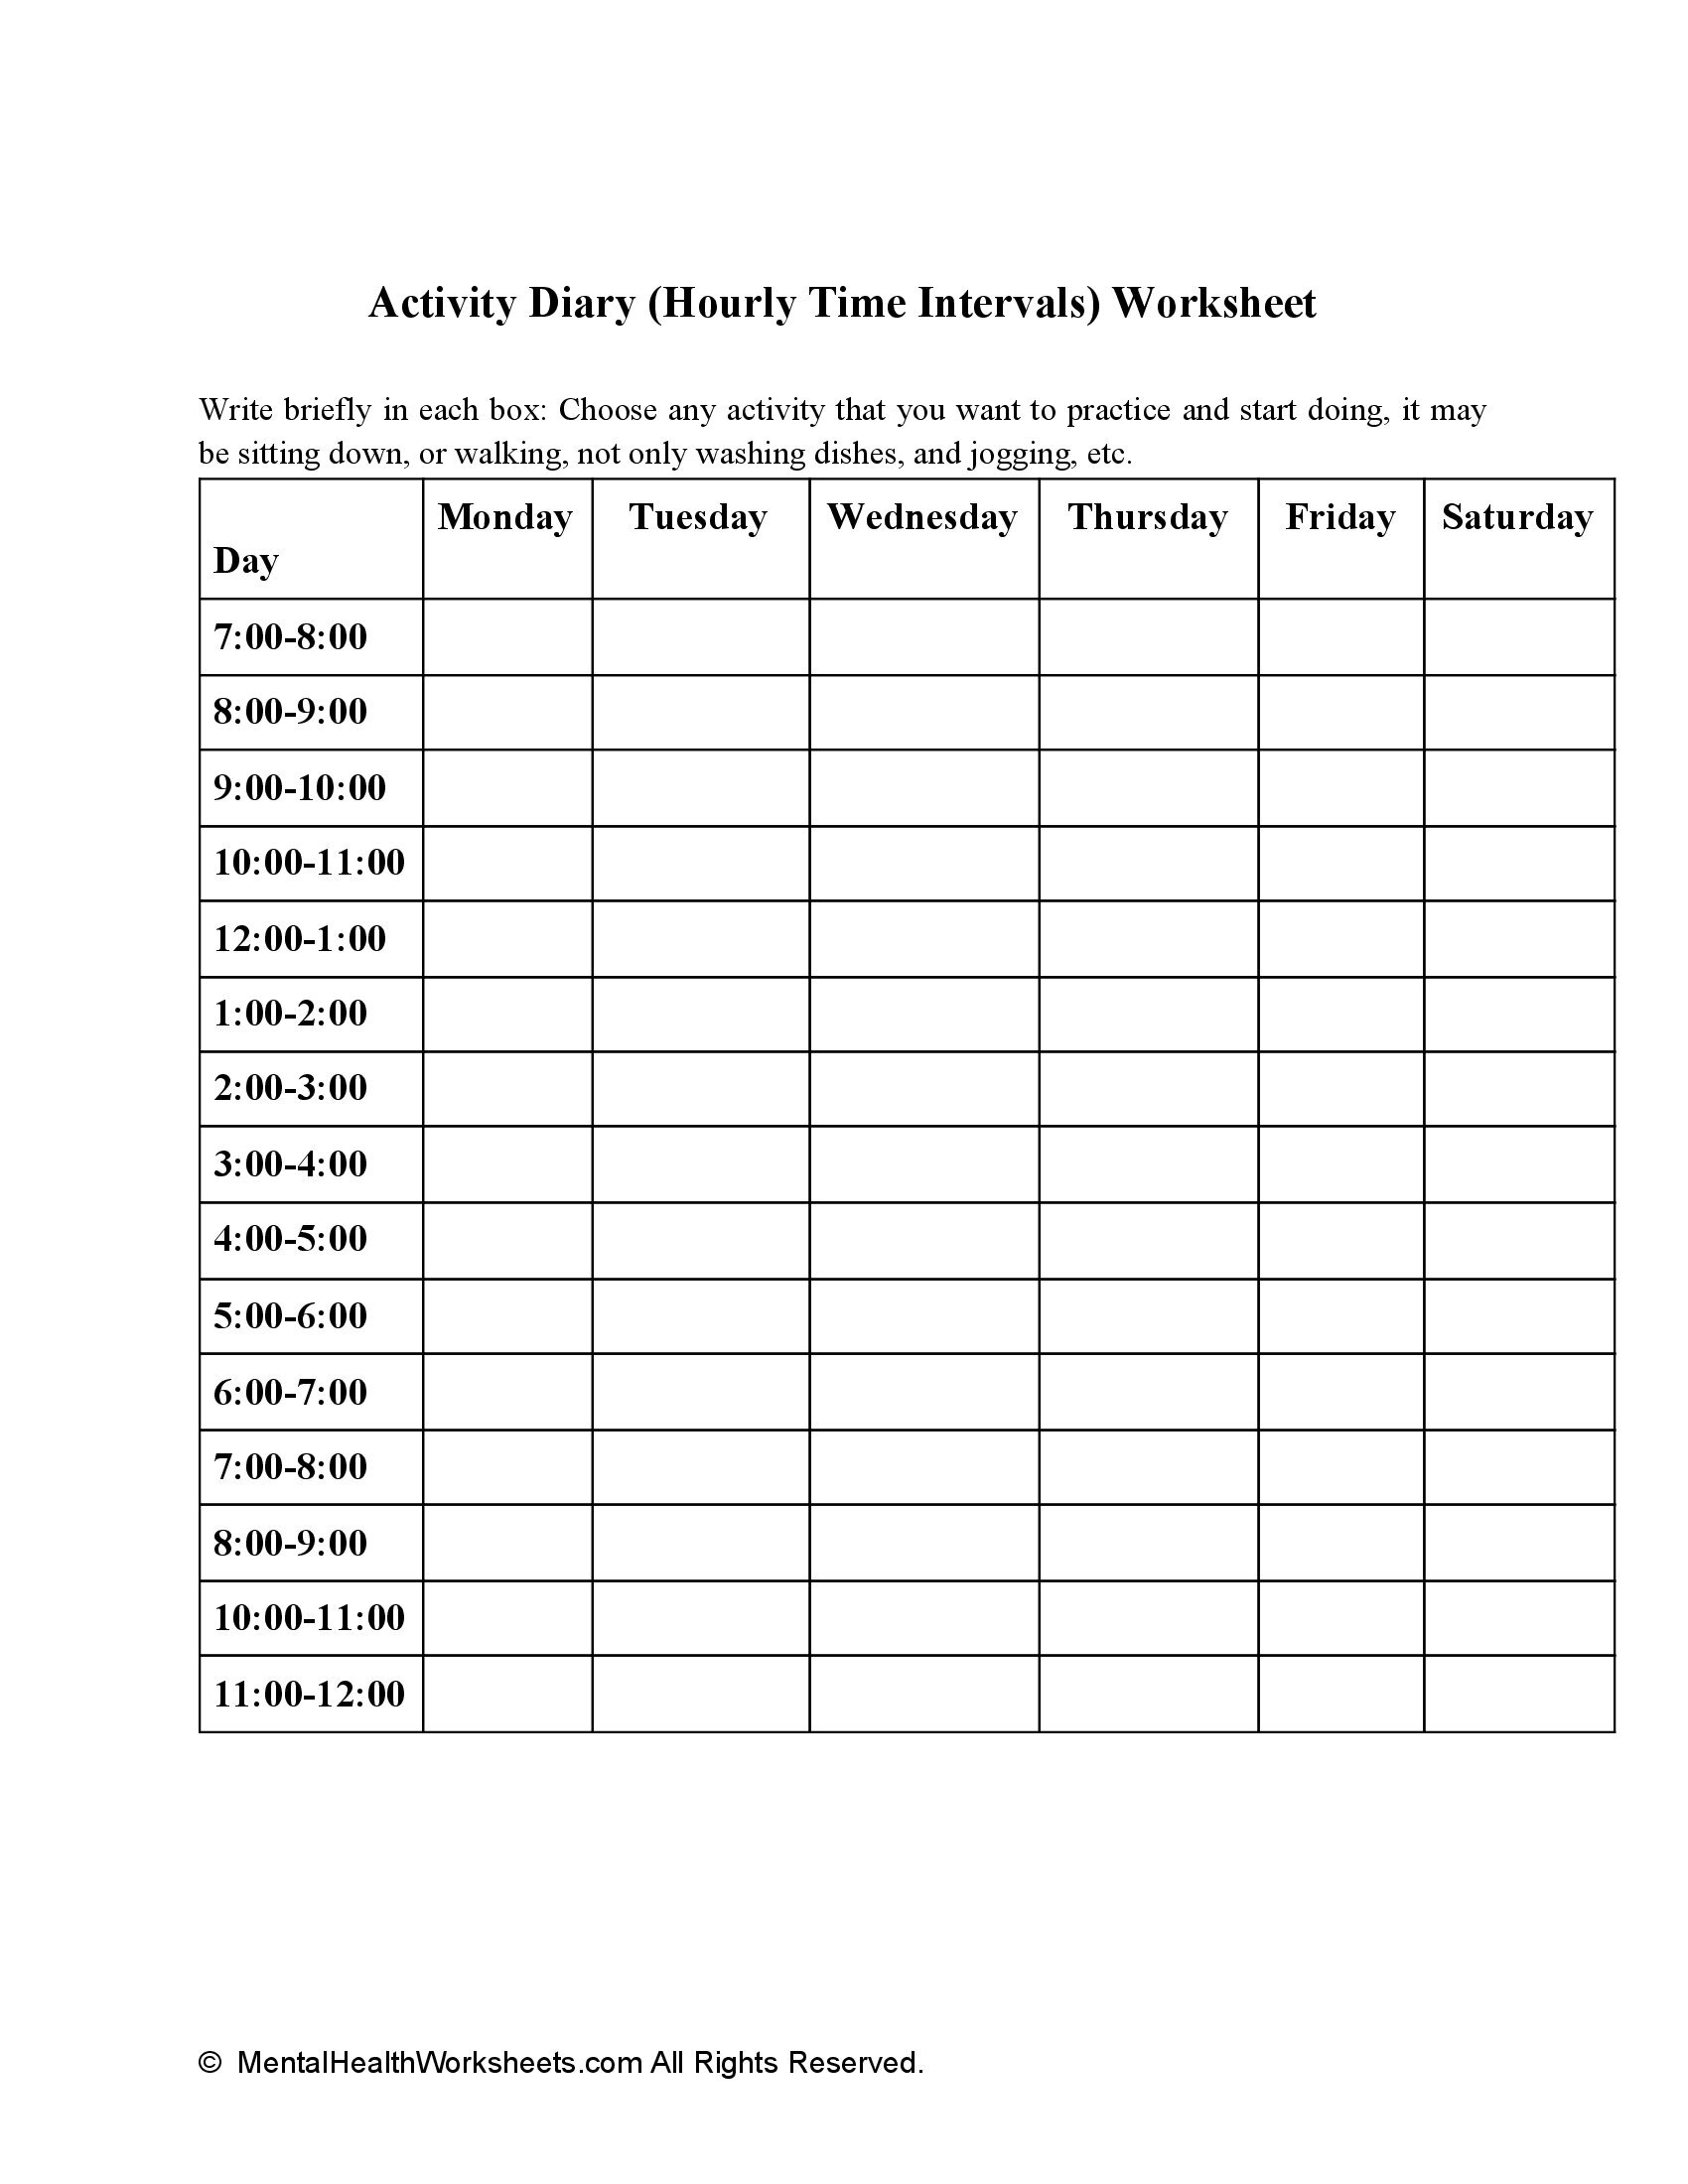 Activity Diary (Hourly Time Intervals) Worksheet